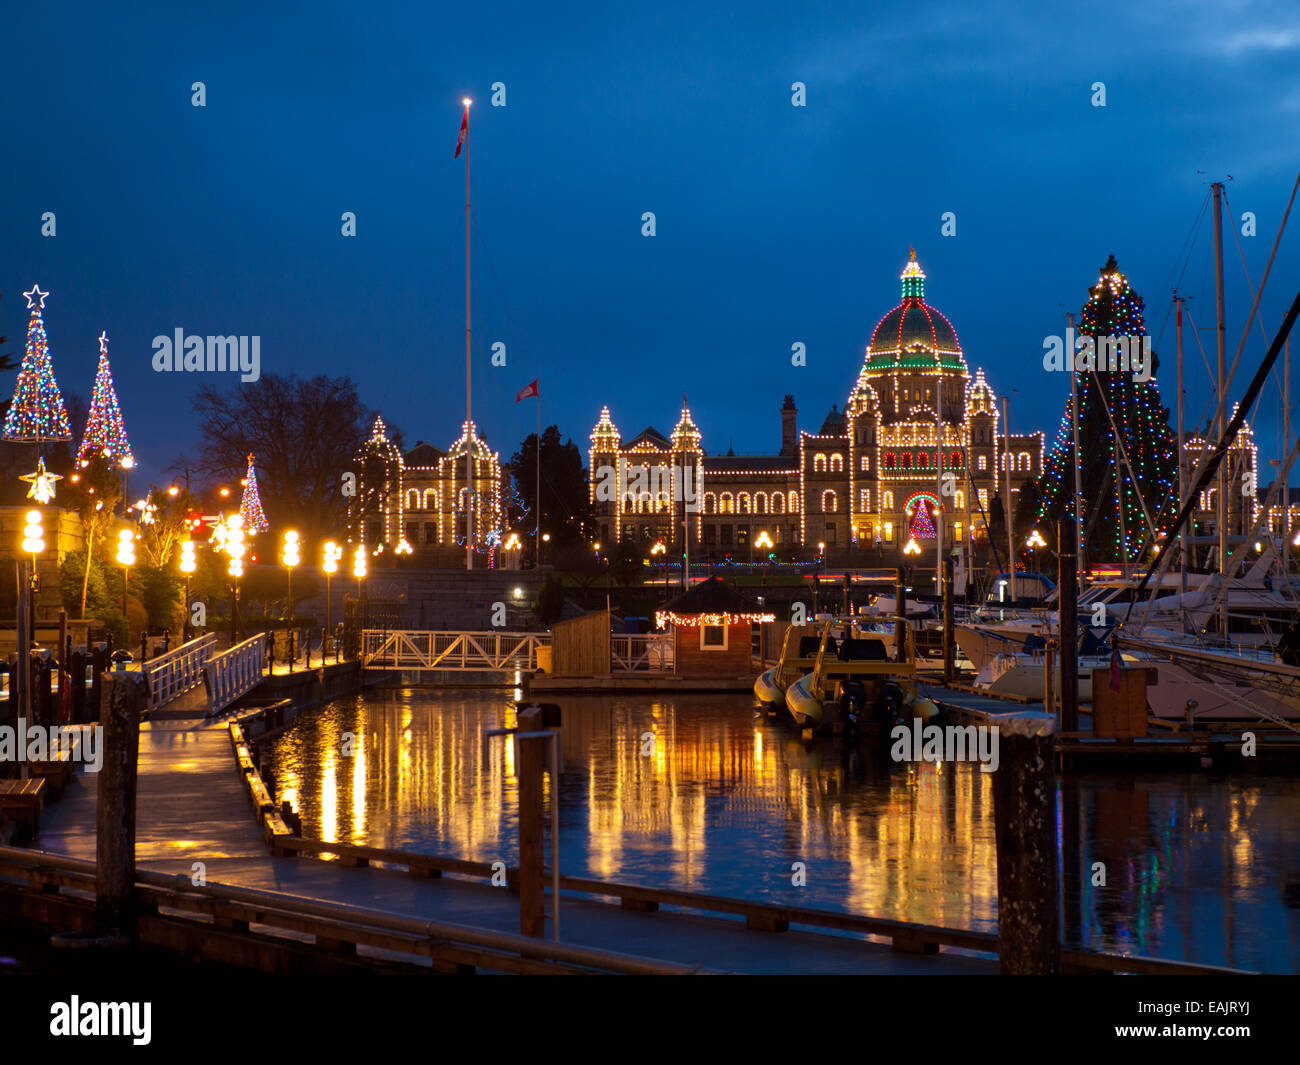 Christmas Lights Adorn The British Columbia Parliament Building And Inner Harbour In Victoria Canada